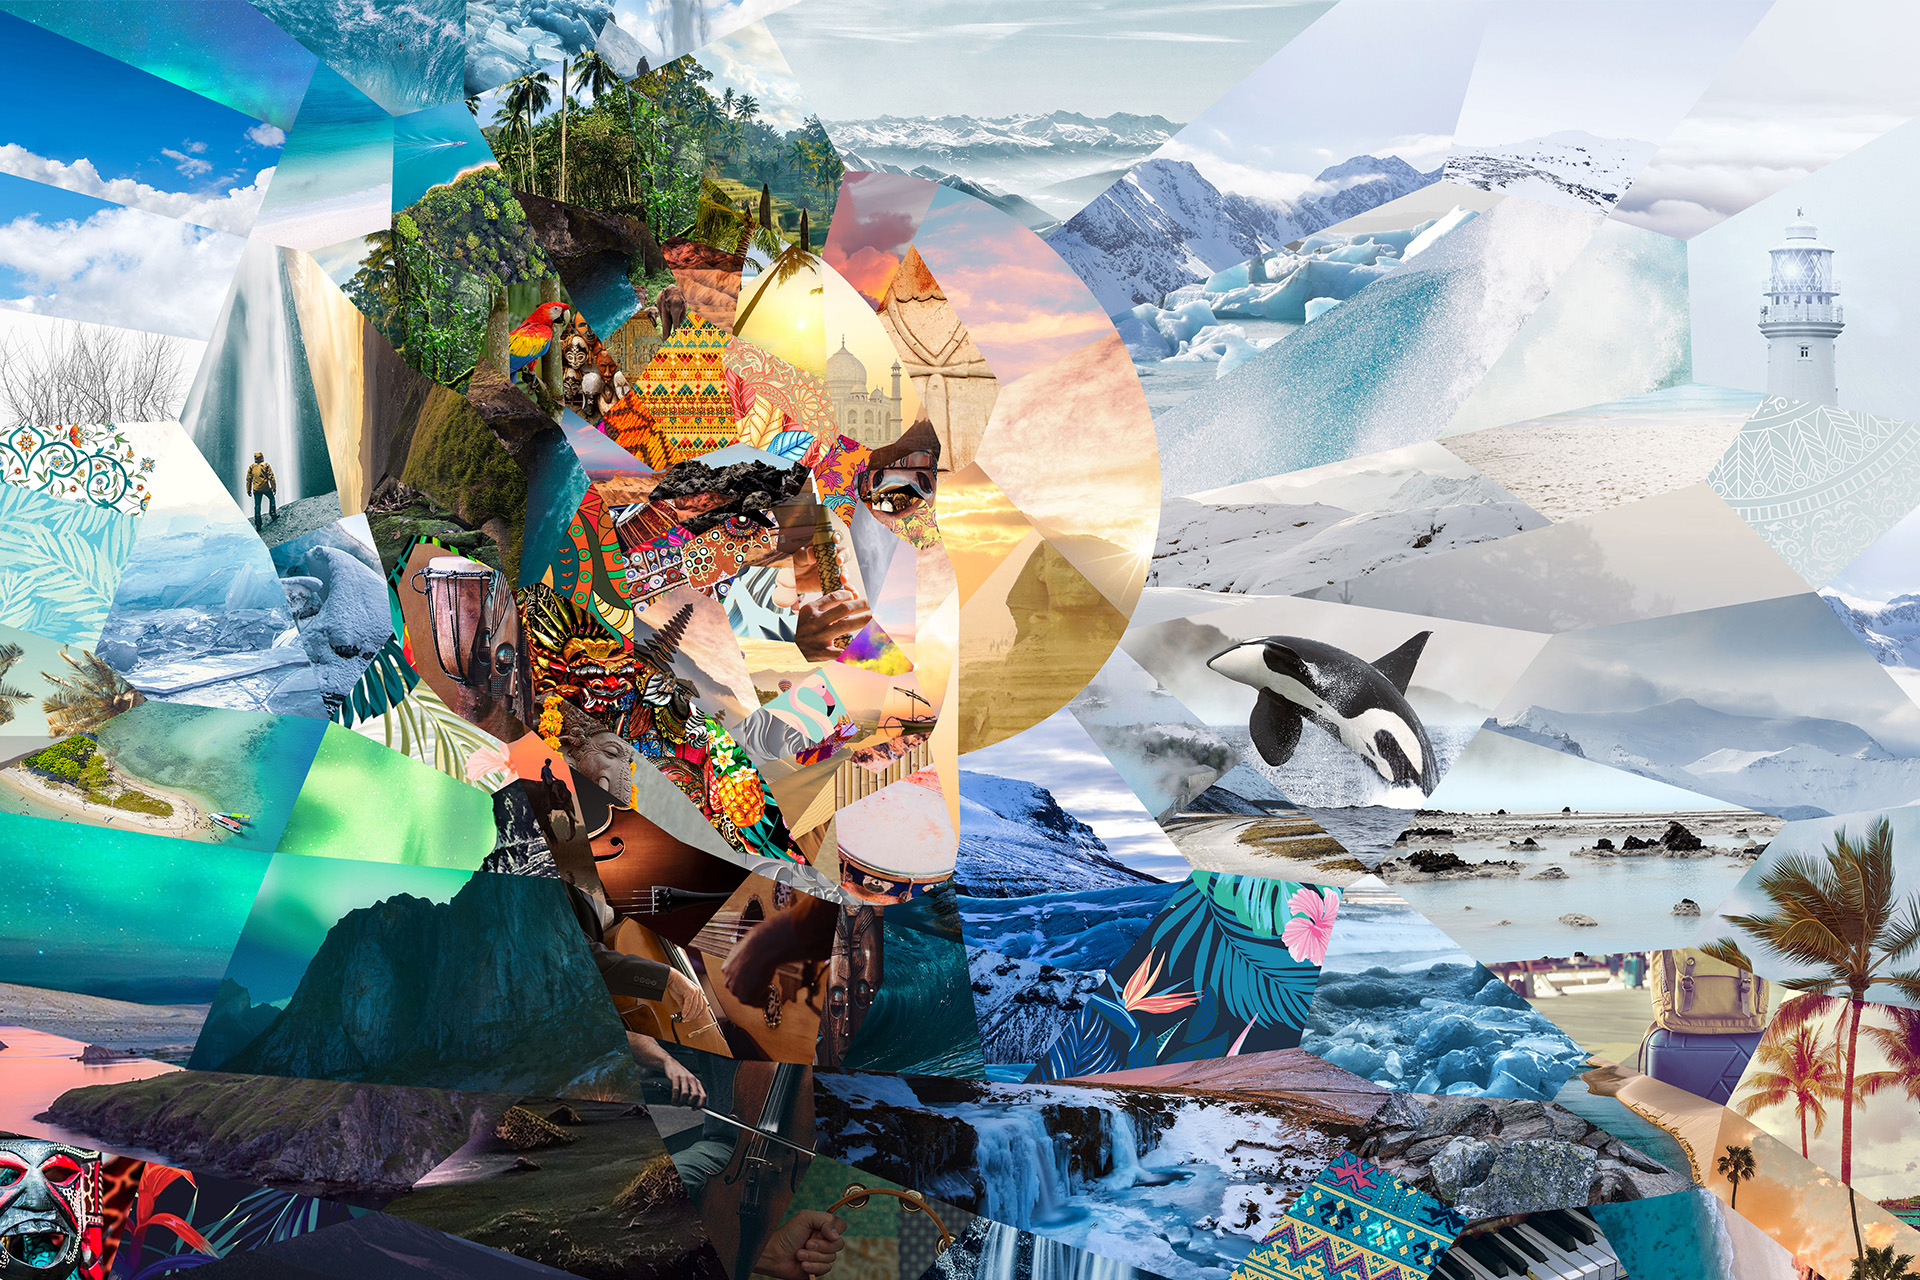 This Music Album Artwork Is Made Out Of More Than 160 Unretouched Images.